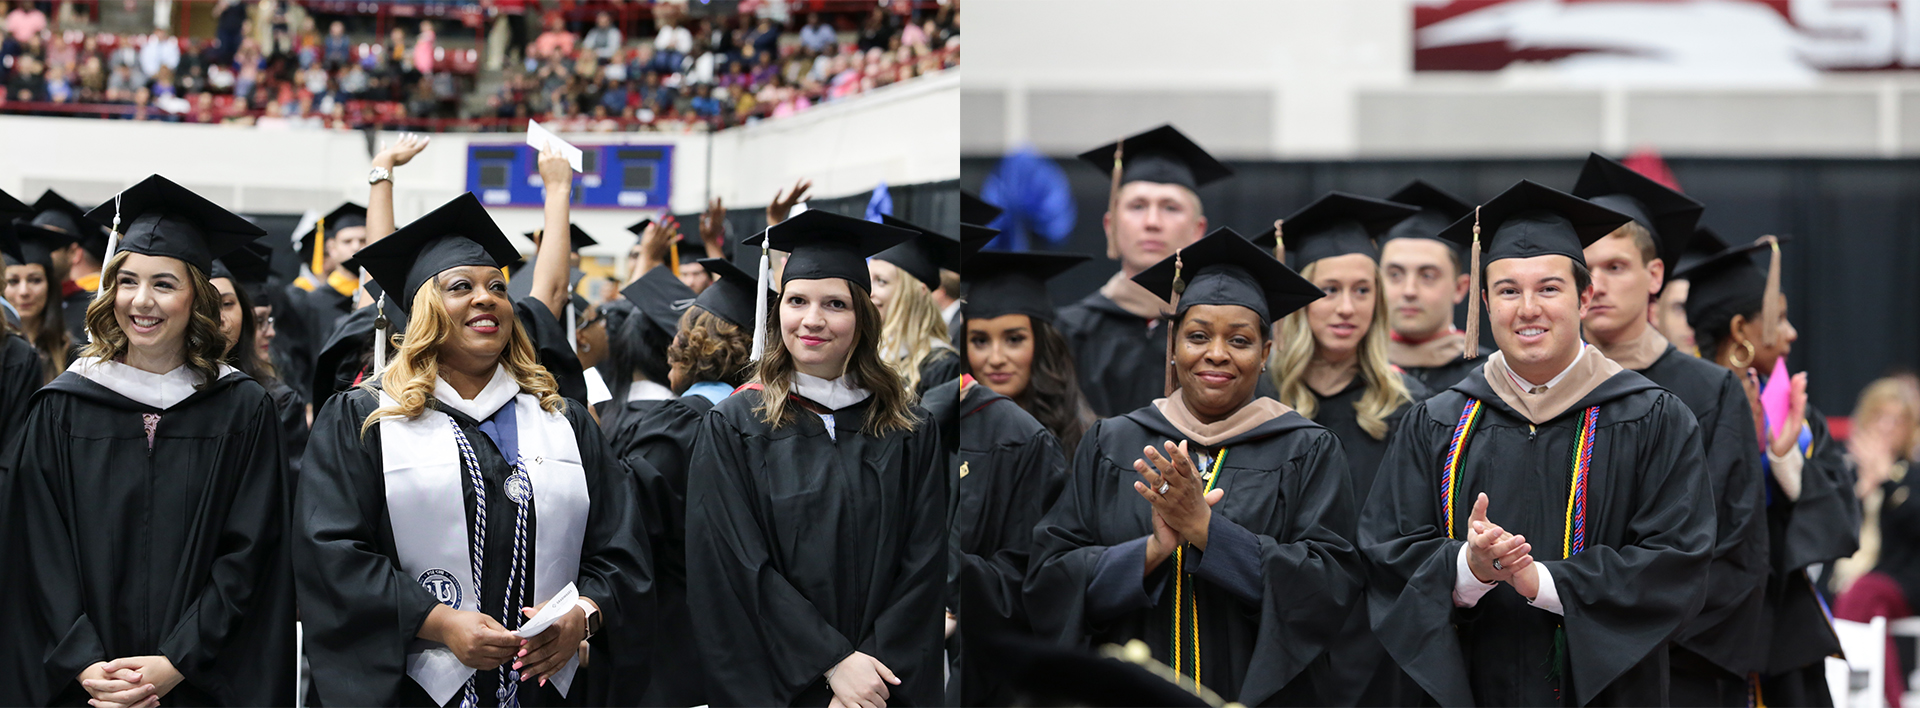 Detroit Mercy Class of 2020 cheering at Commencement.